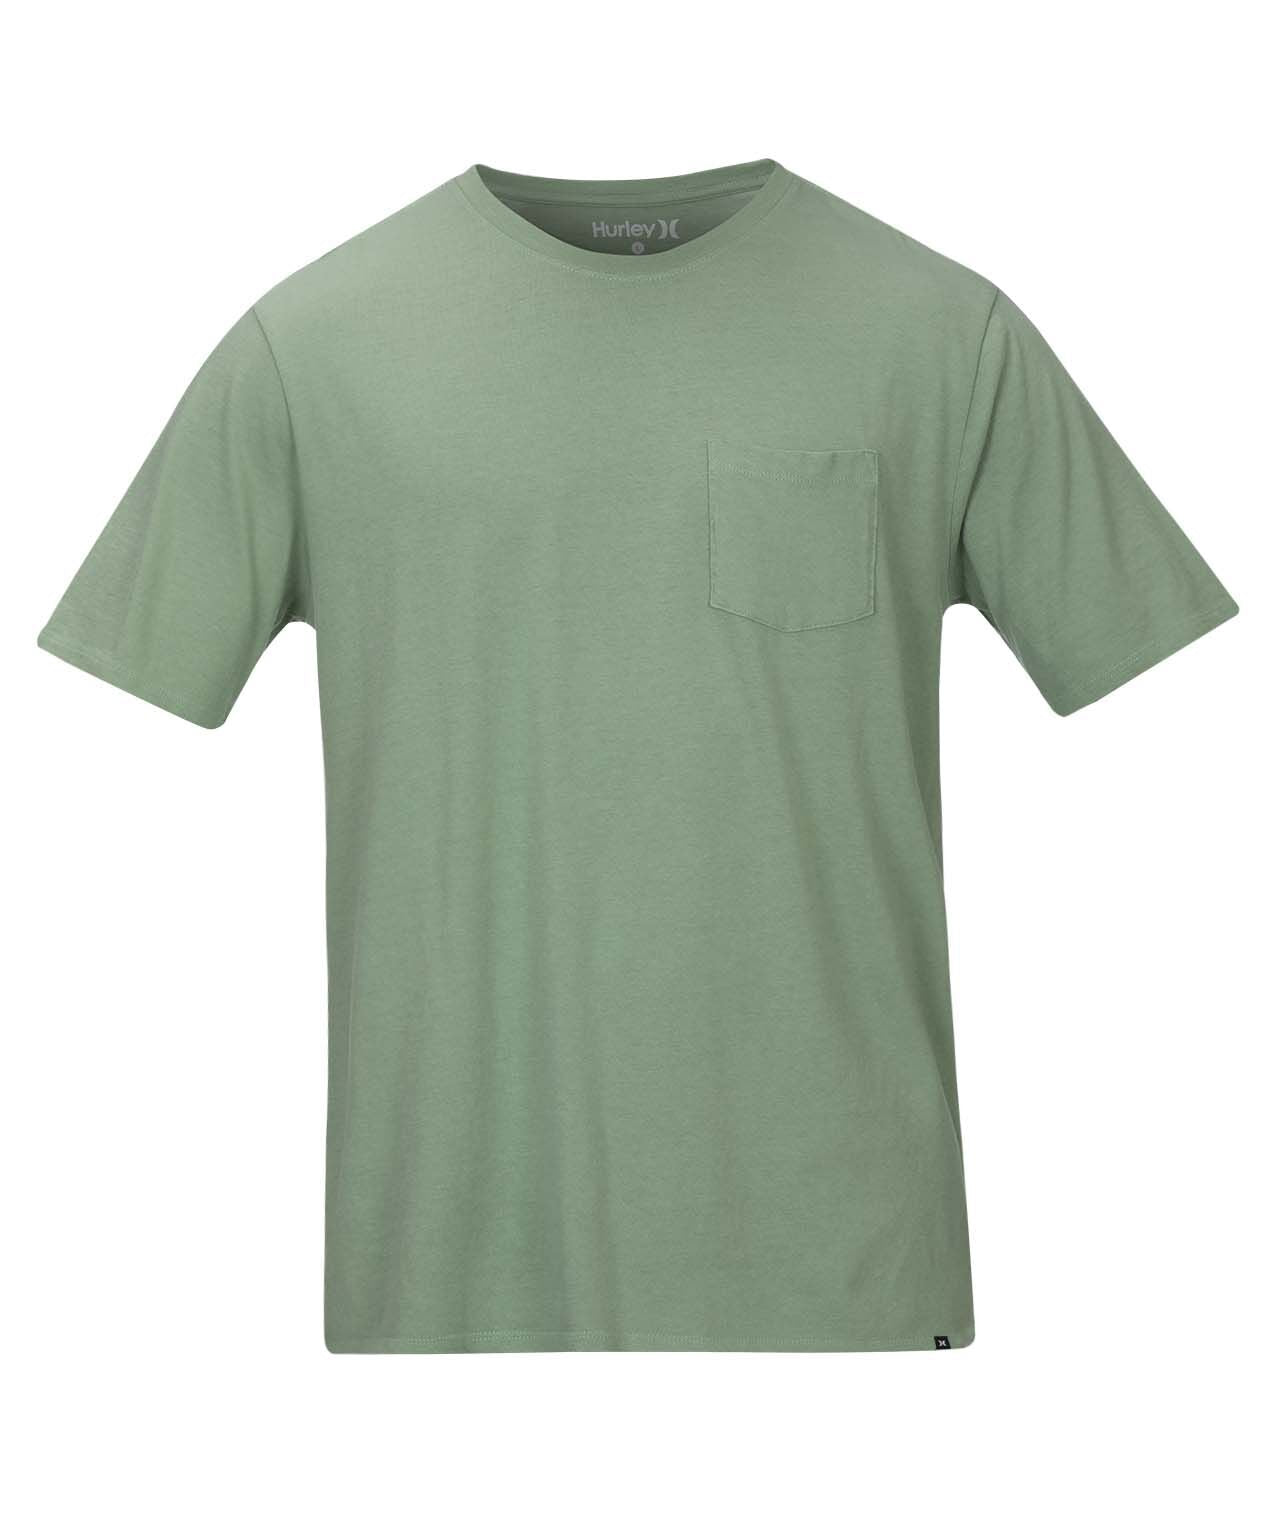 HURLEY MENS STAPLE LIGHT GREEN TSHIRT